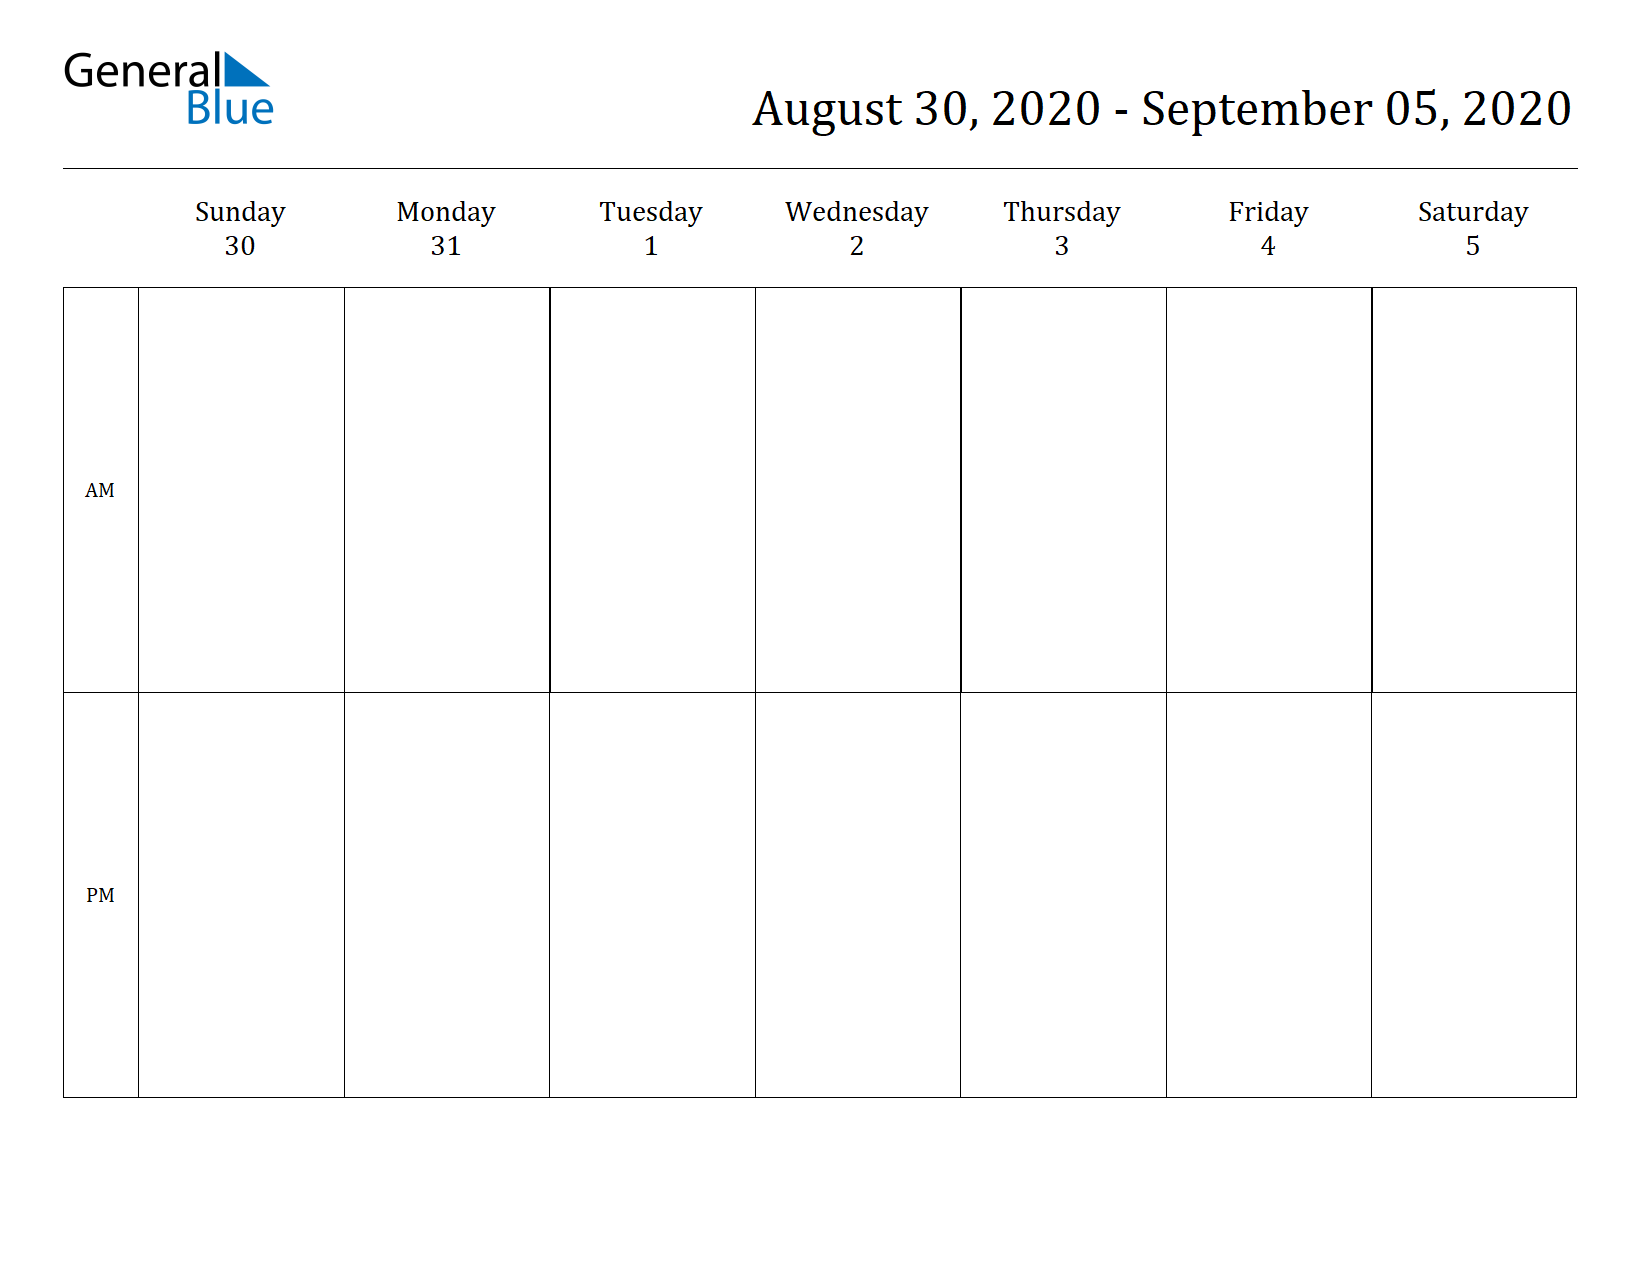 Weekly Calendar for Aug 30, 2020 to Sep 05, 2020